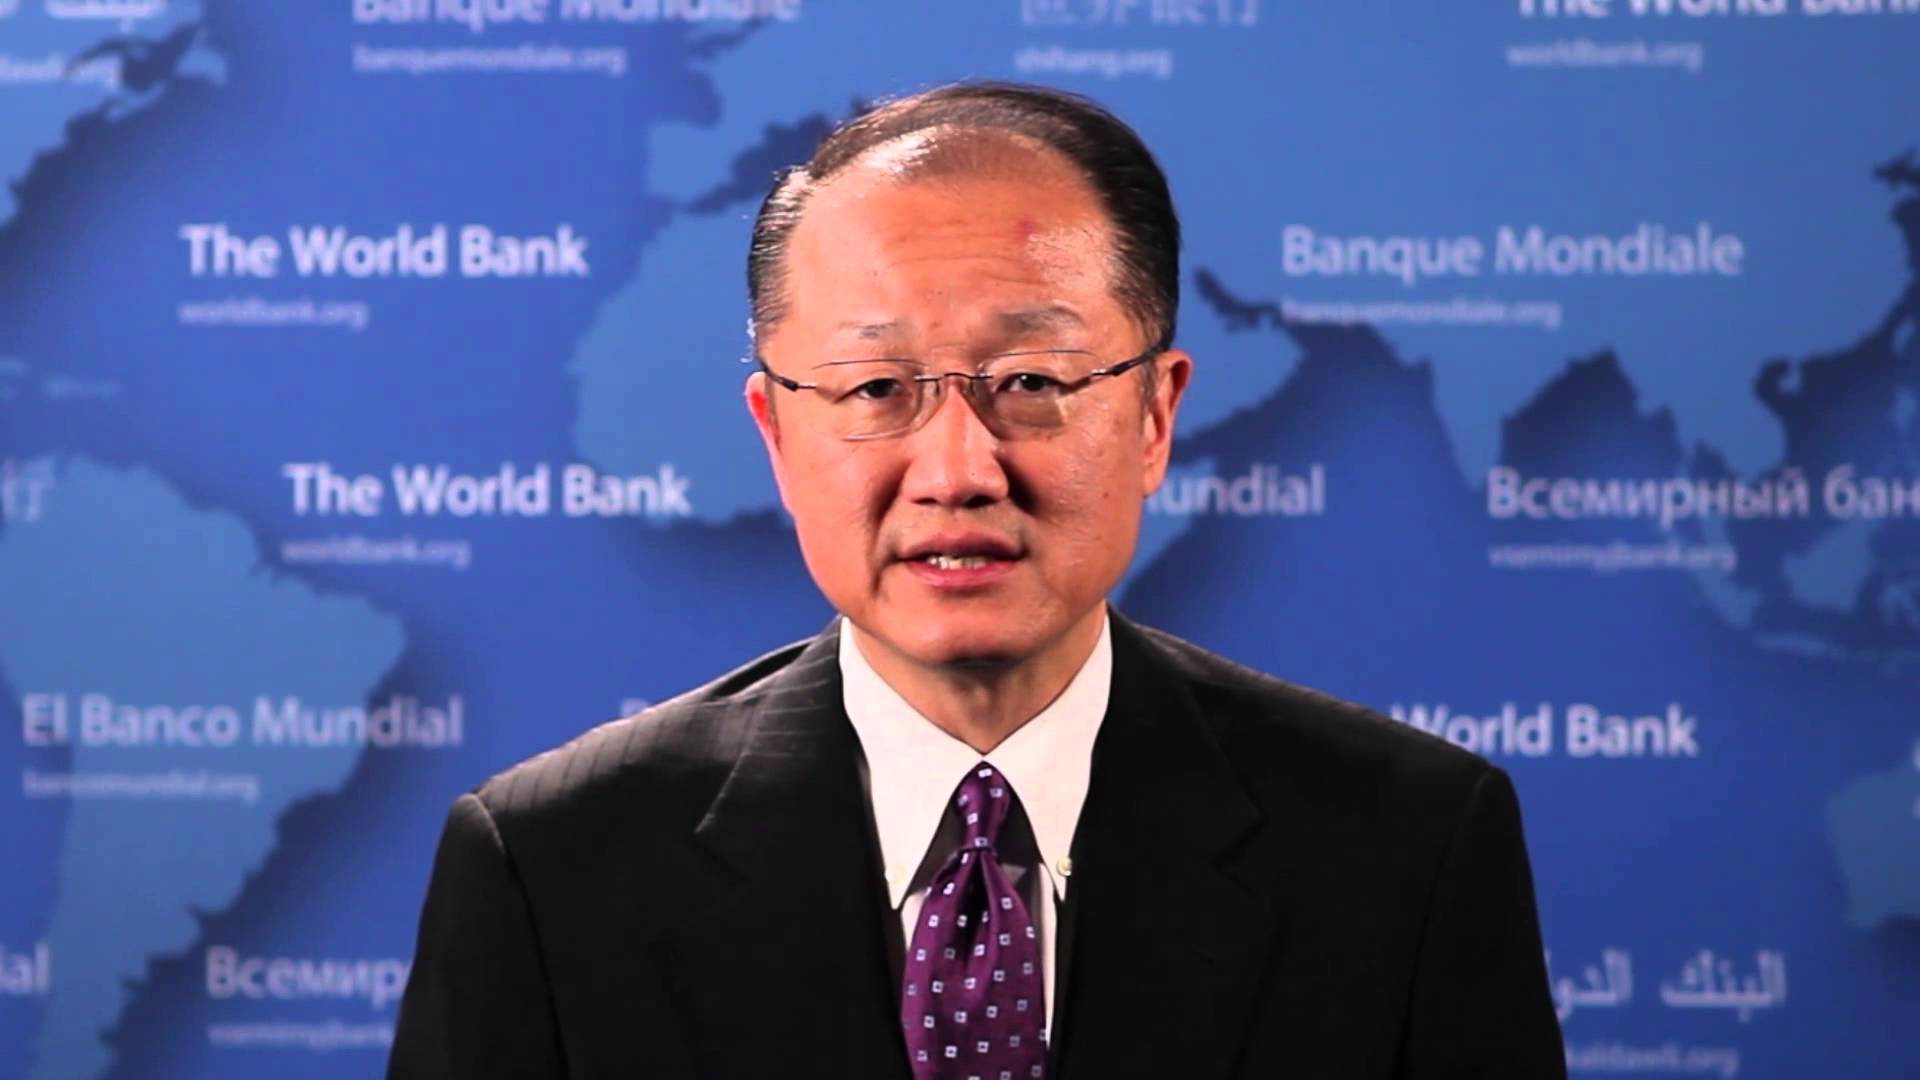 Kim's Resignation: World Bank commences selection process for new president